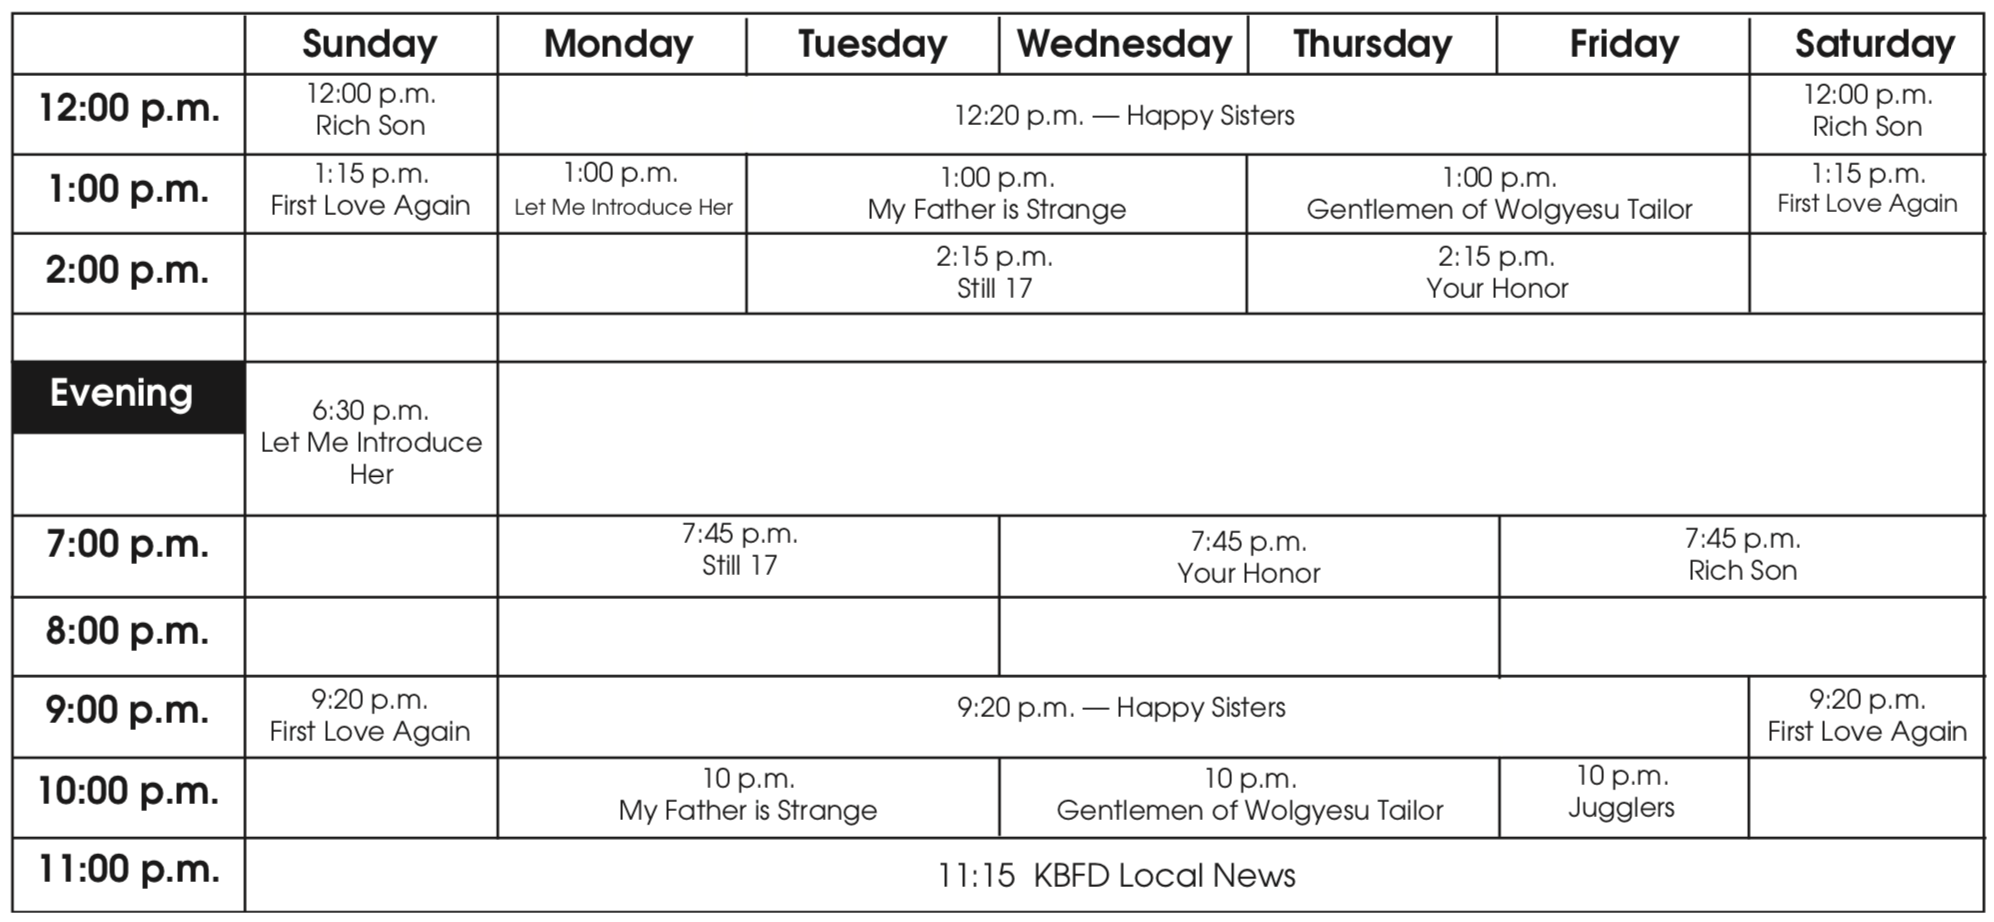 Weekly KBFD Table, 8/17/18 issue